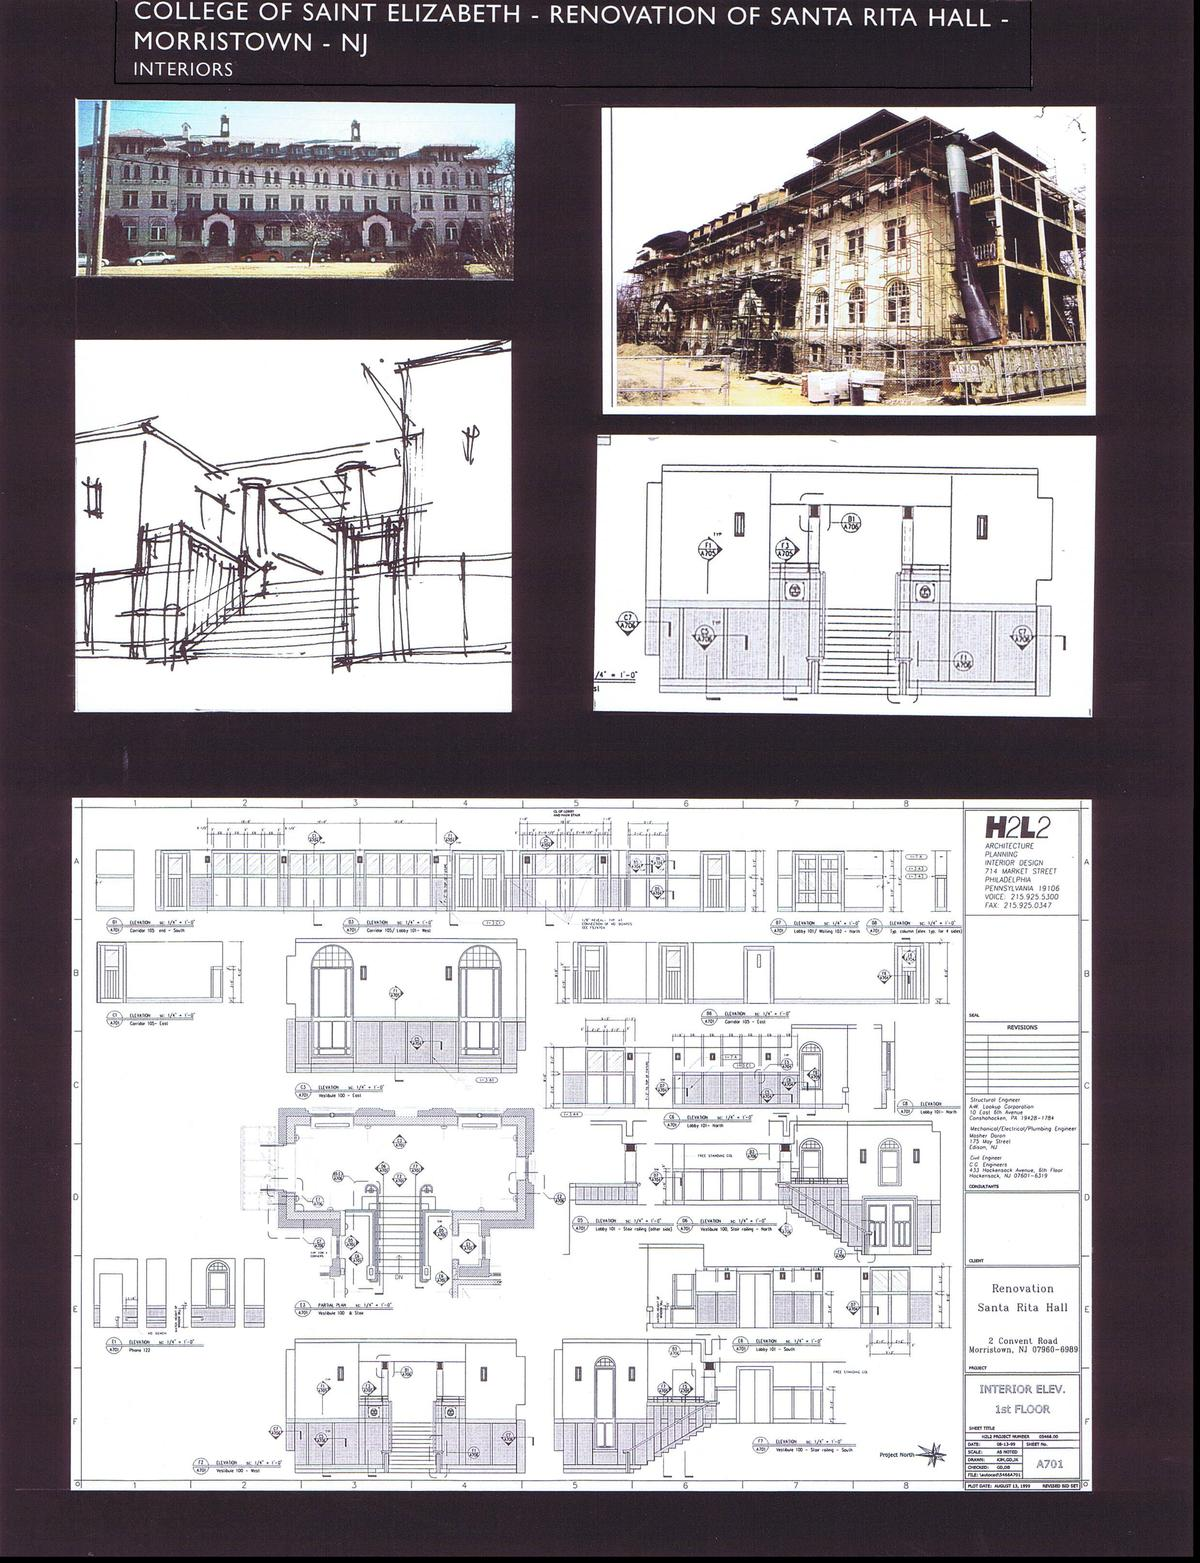 Sketch and Int. Elev. of Main Stair, Interior Elevations